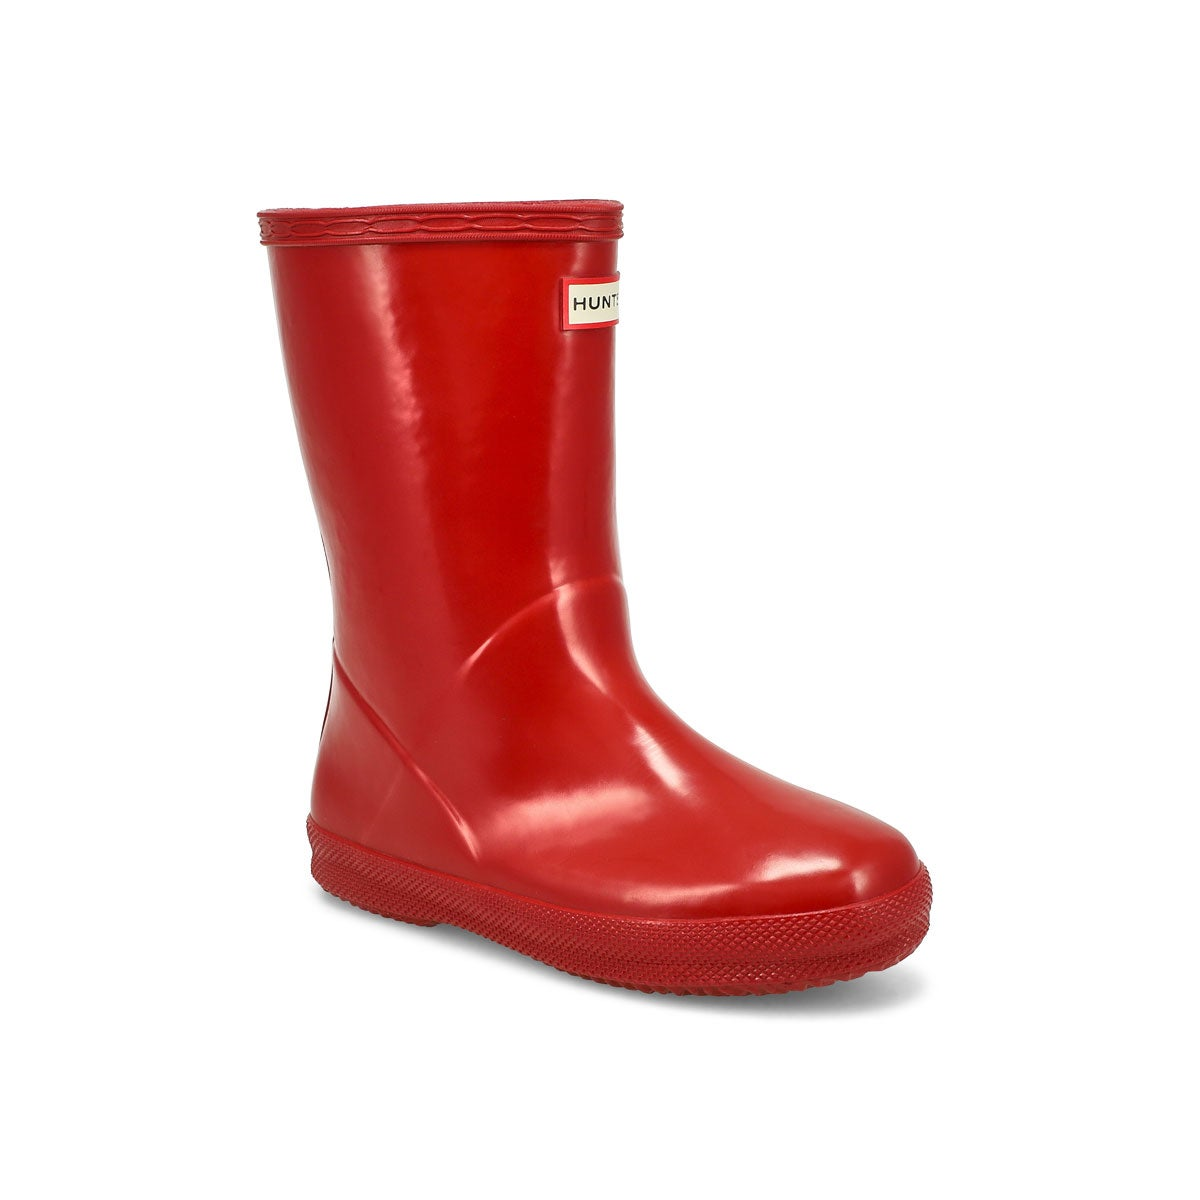 Infants' FIRST CLASSIC GLOSS red rain boots